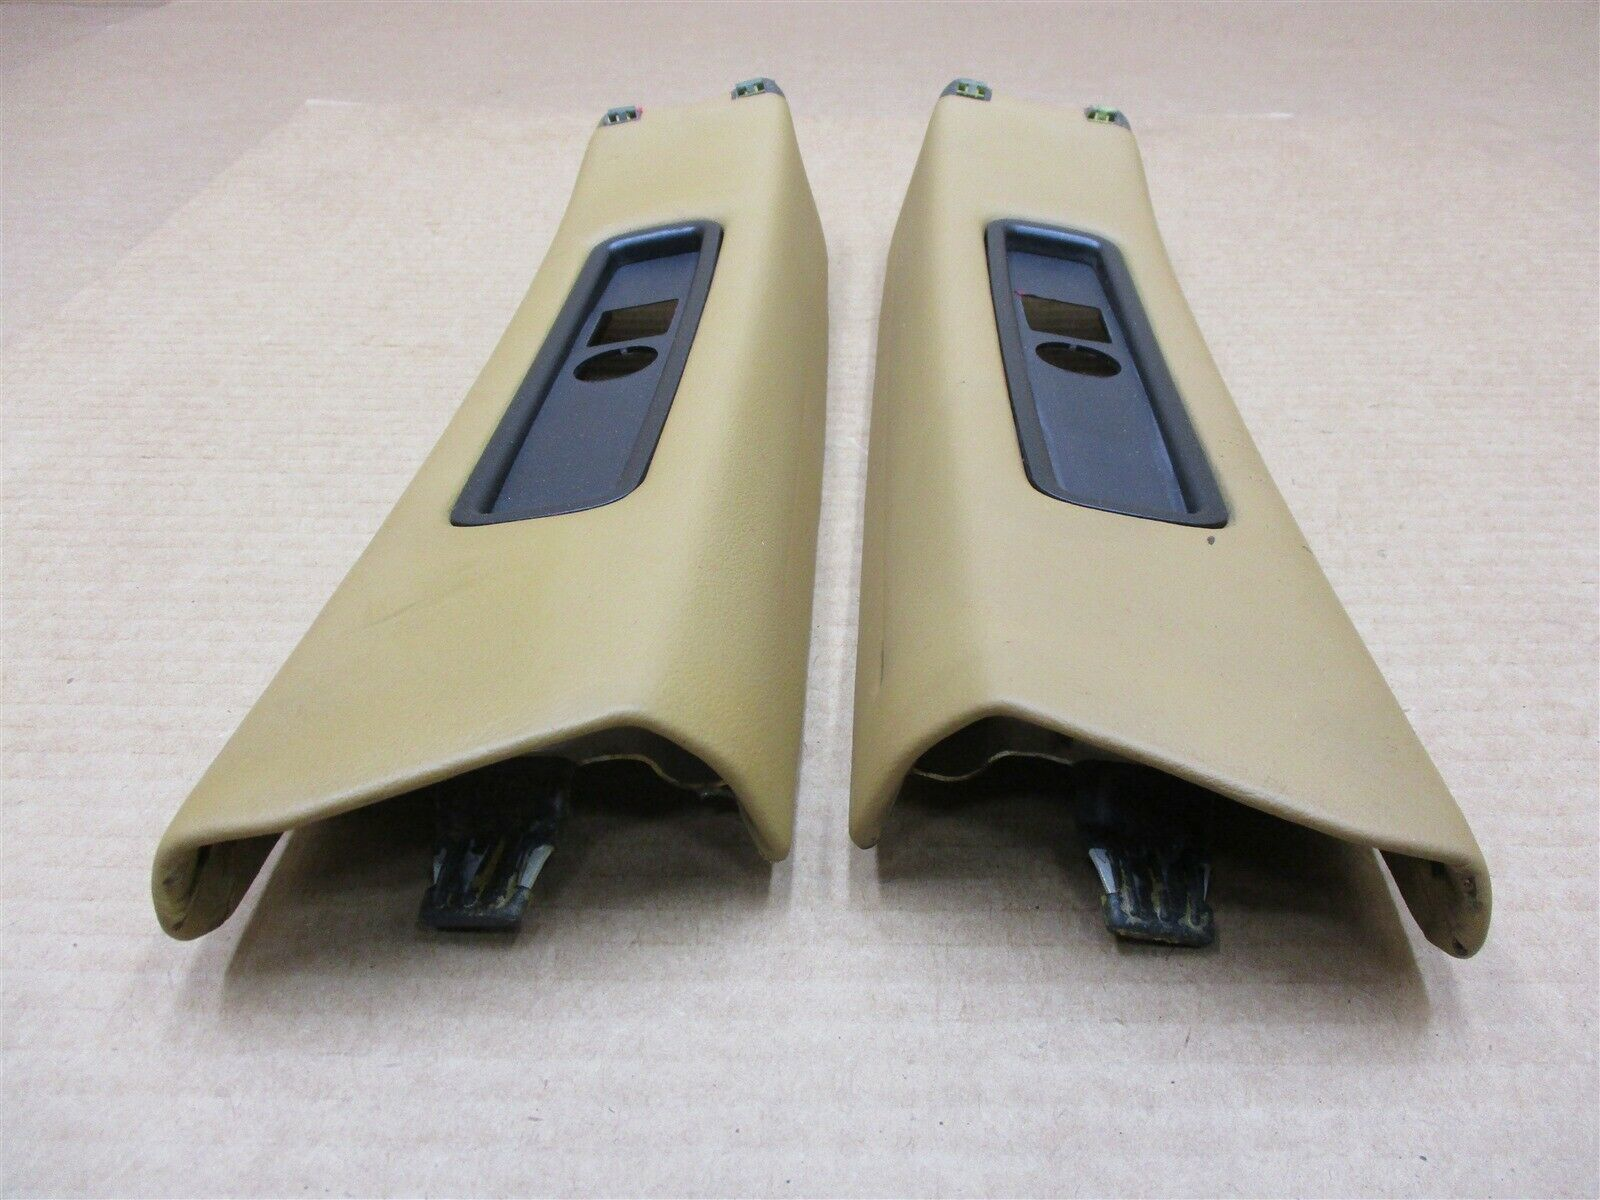 02 Carrera 4S 911 Porsche 996 Coupe SEAT BELT PILLAR TRIMS 99655552701 153,363